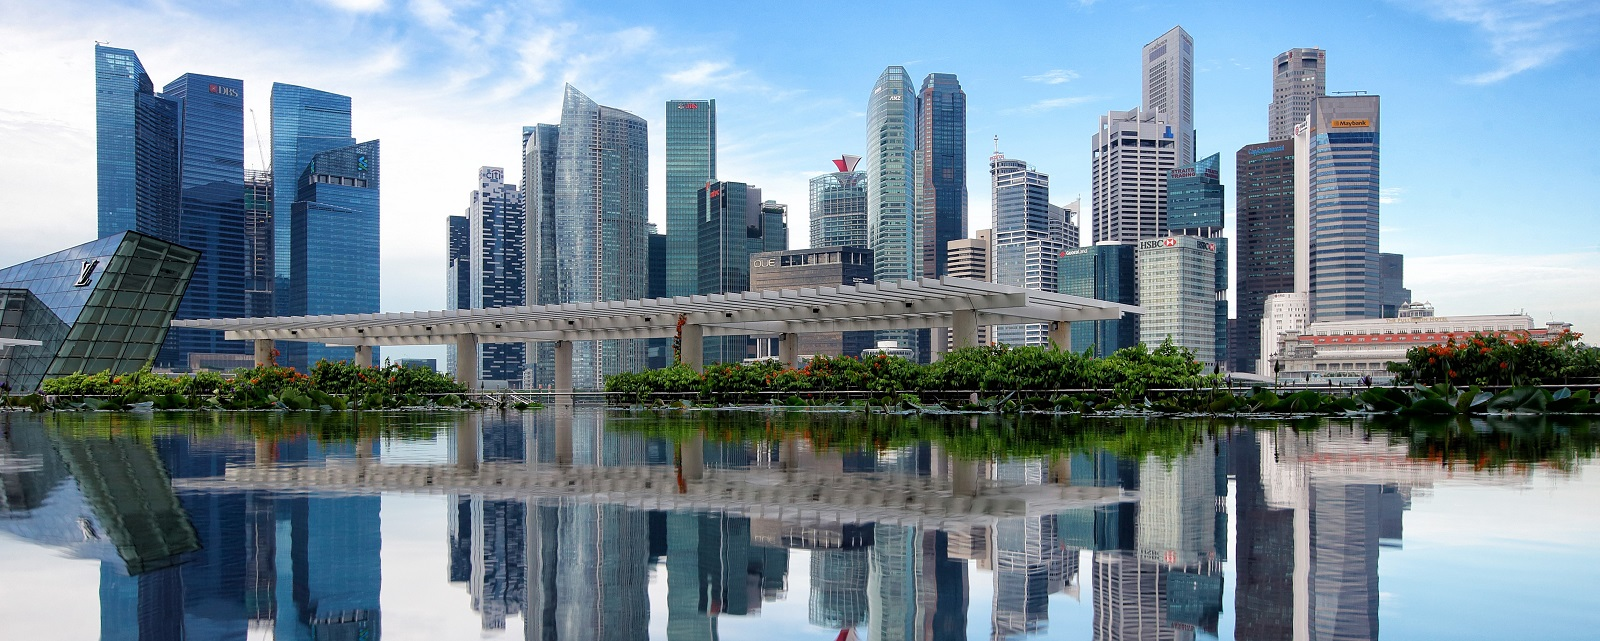 Singapore's central business district (Photo: Suhaimi Abdullah/Getty Images)